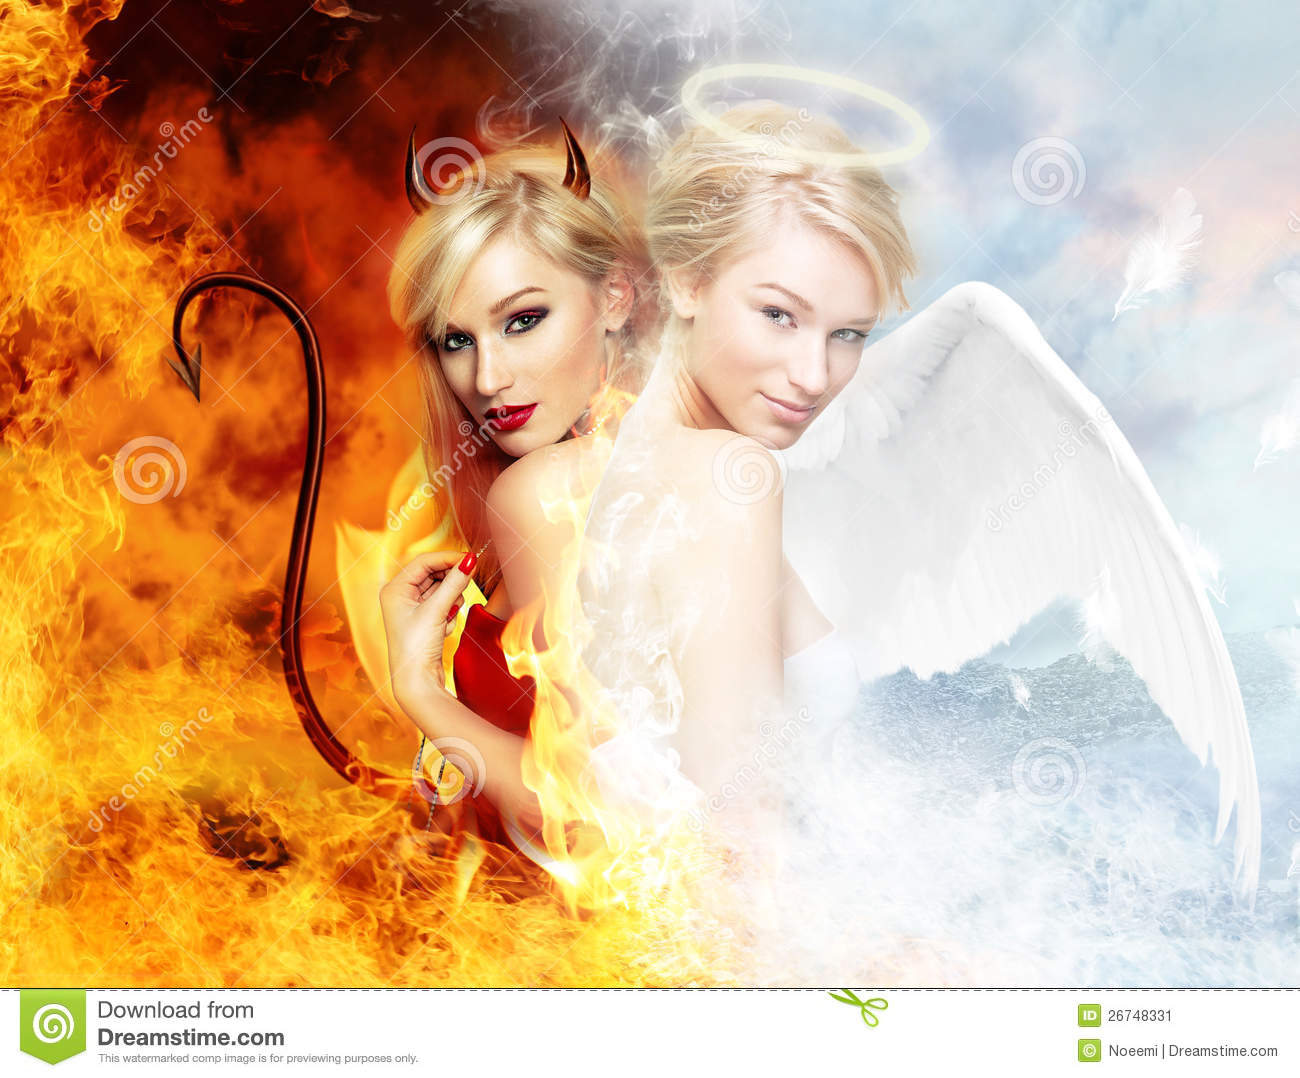 Sexy Devil Vs Gorgeous Angel Stock Image - Image: 26748331